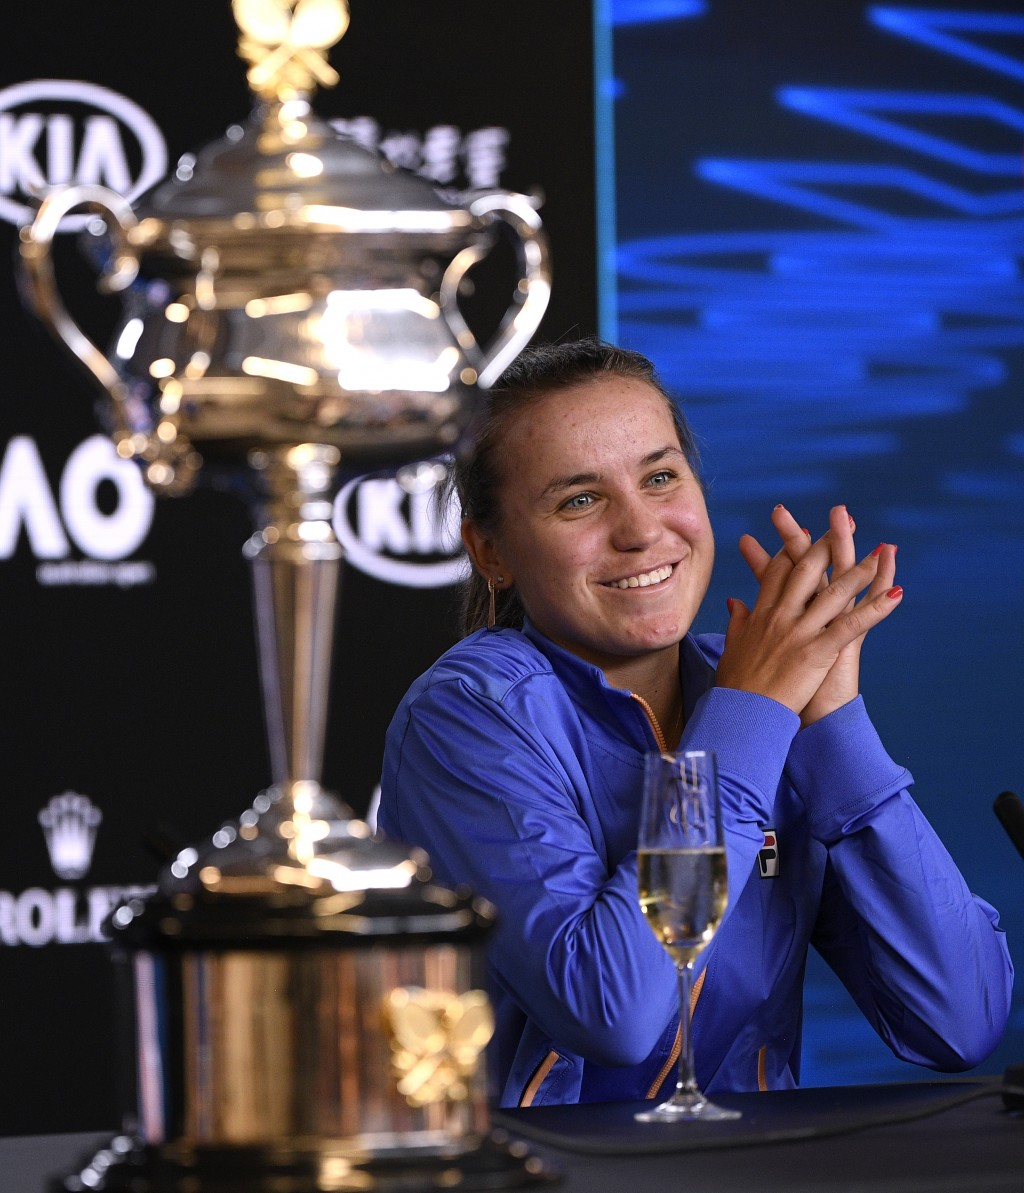 Sofia Kenin of the U.S. answers questions at a press conference following her win over Spain's Garbine Muguruza in the women's final at the Australian...